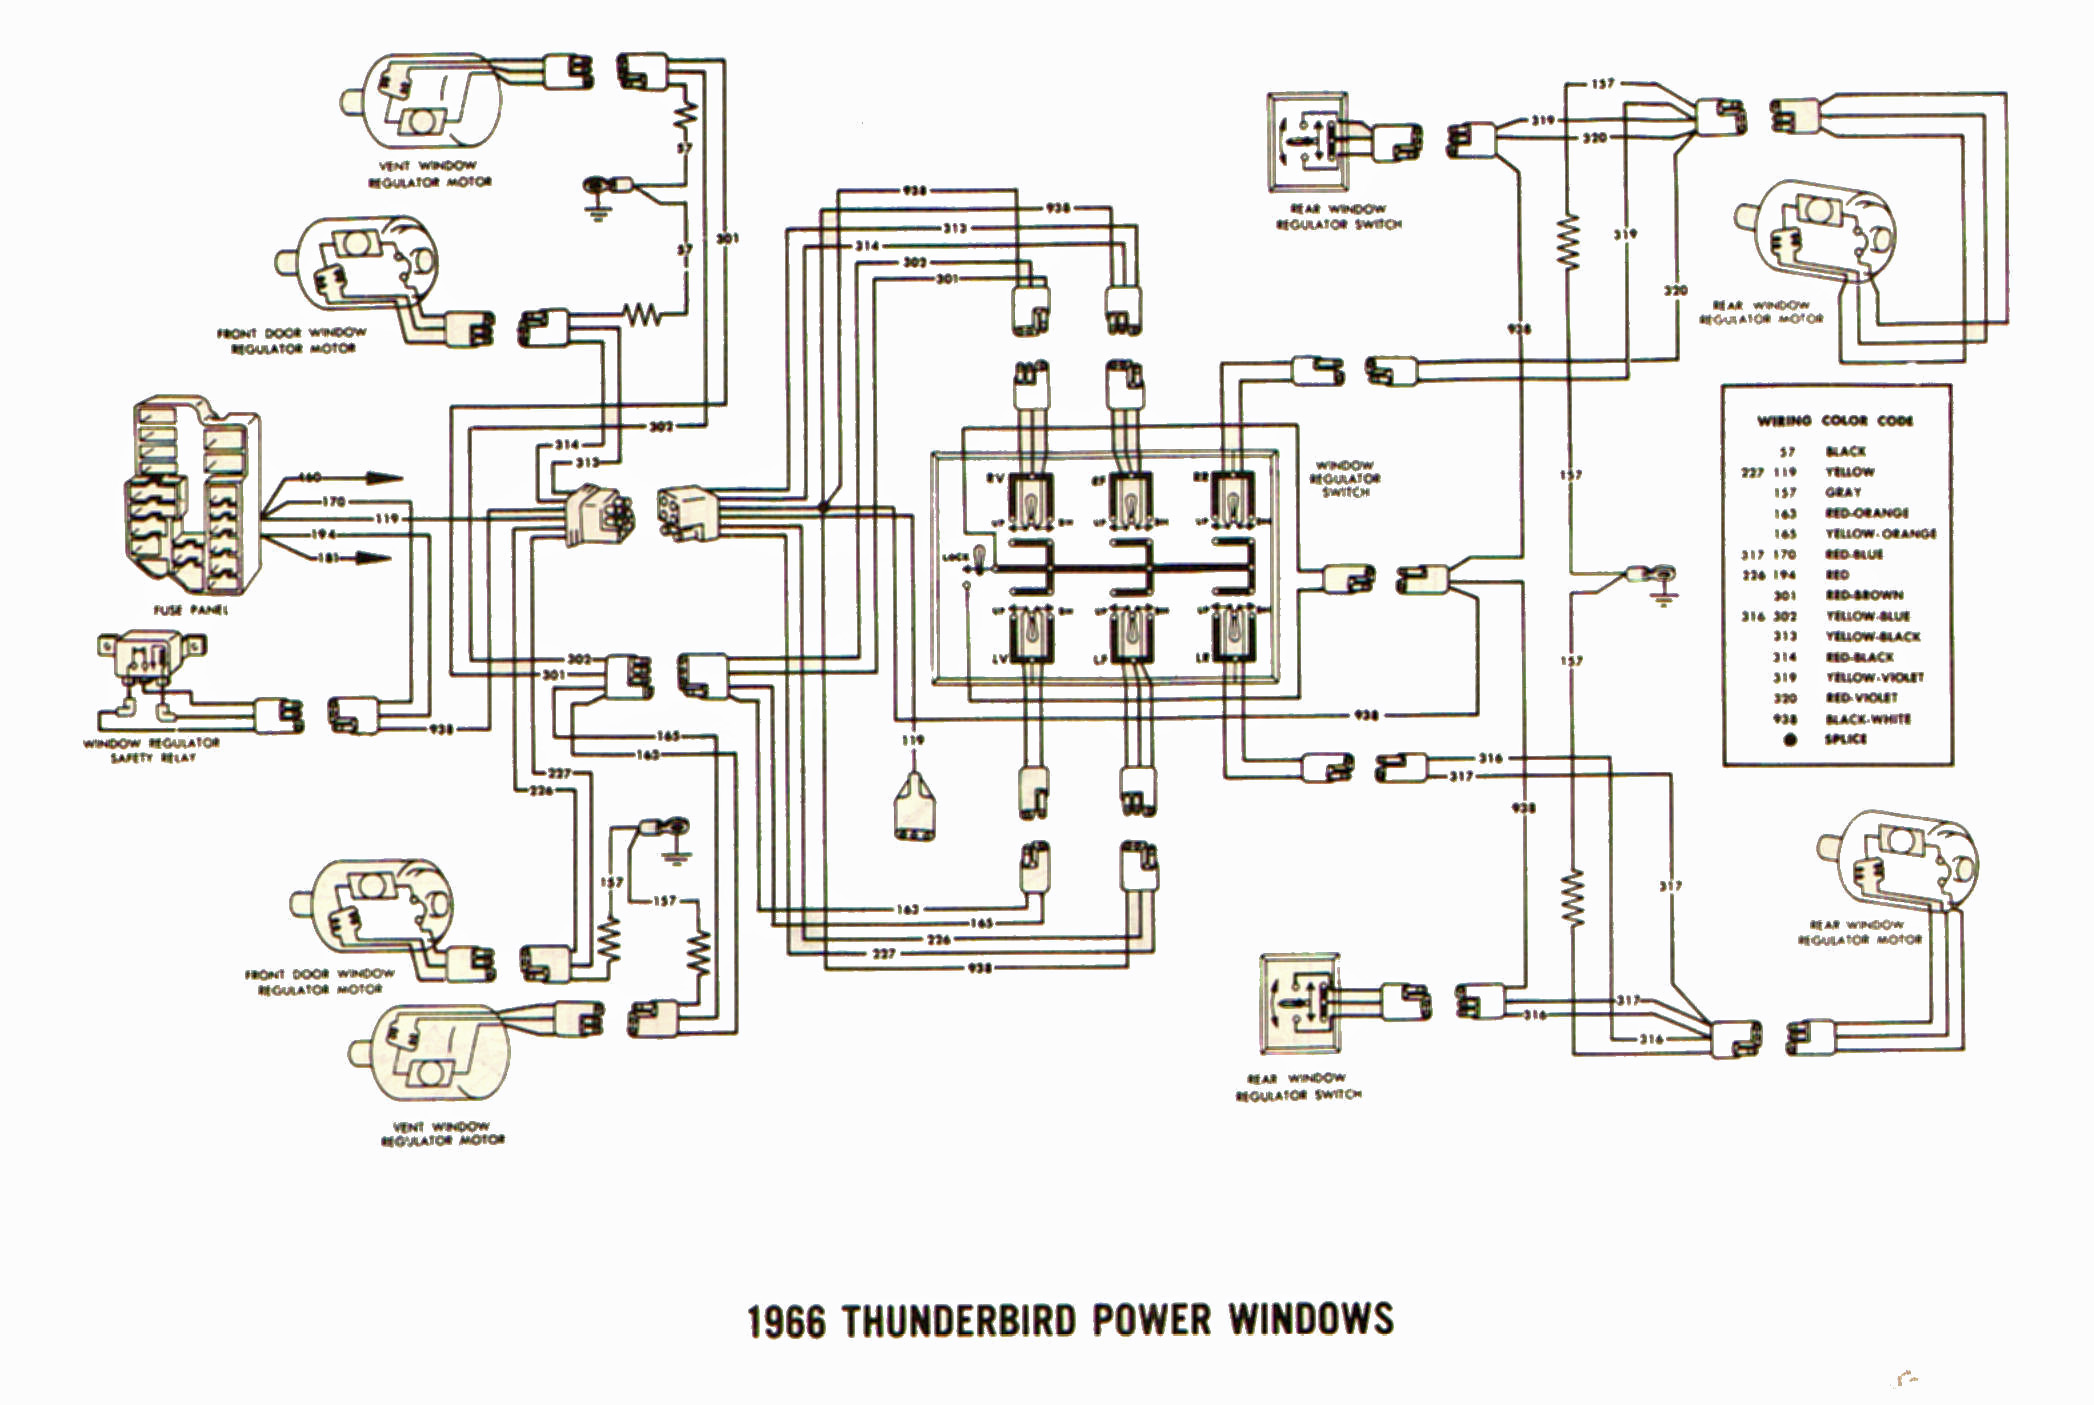 1966 Ford Thunderbird Power Window Wiring